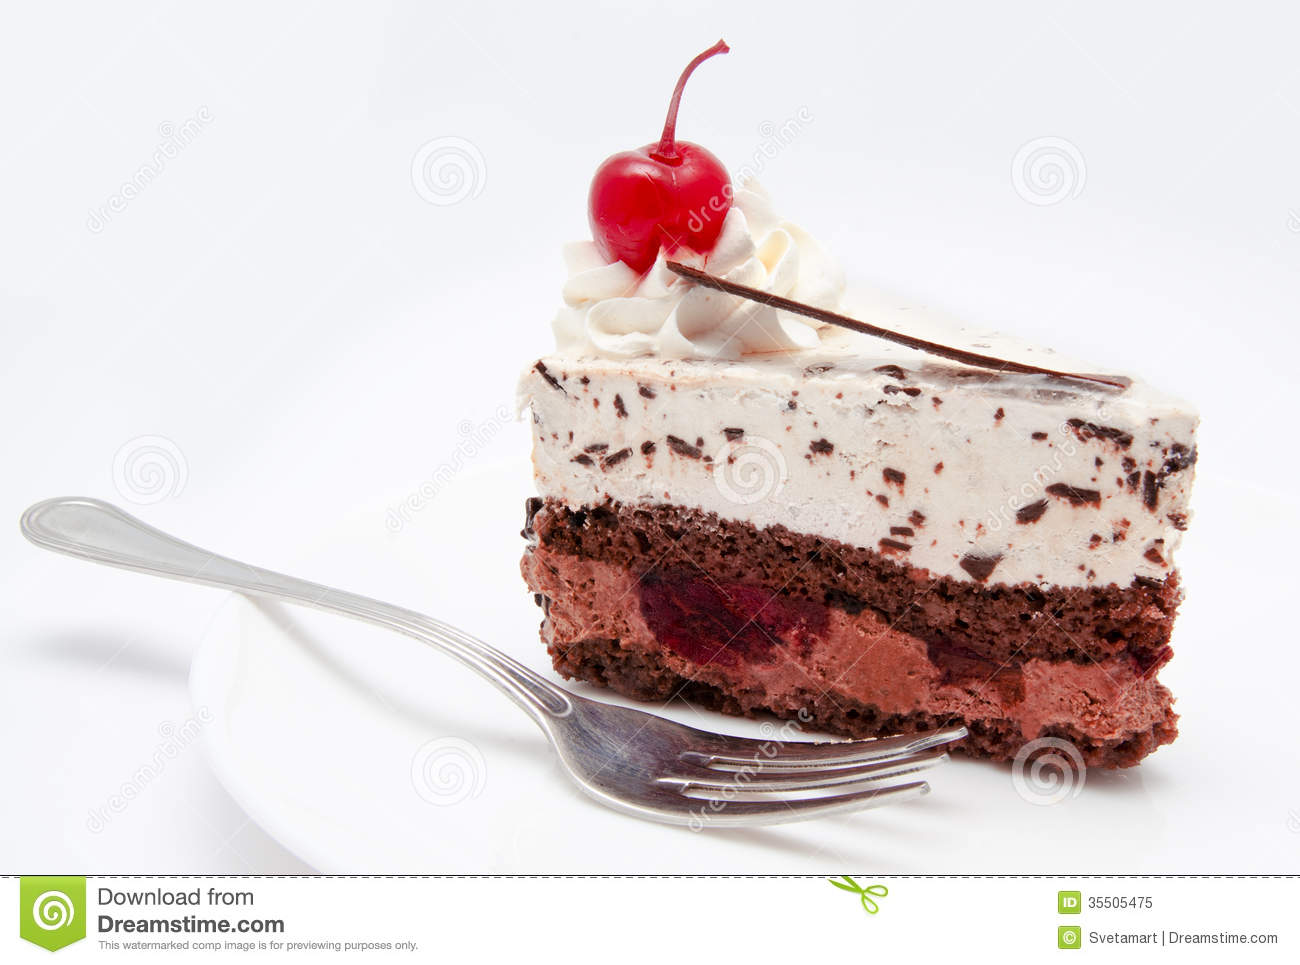 A Slice Of Chocolate Cake In A Plate